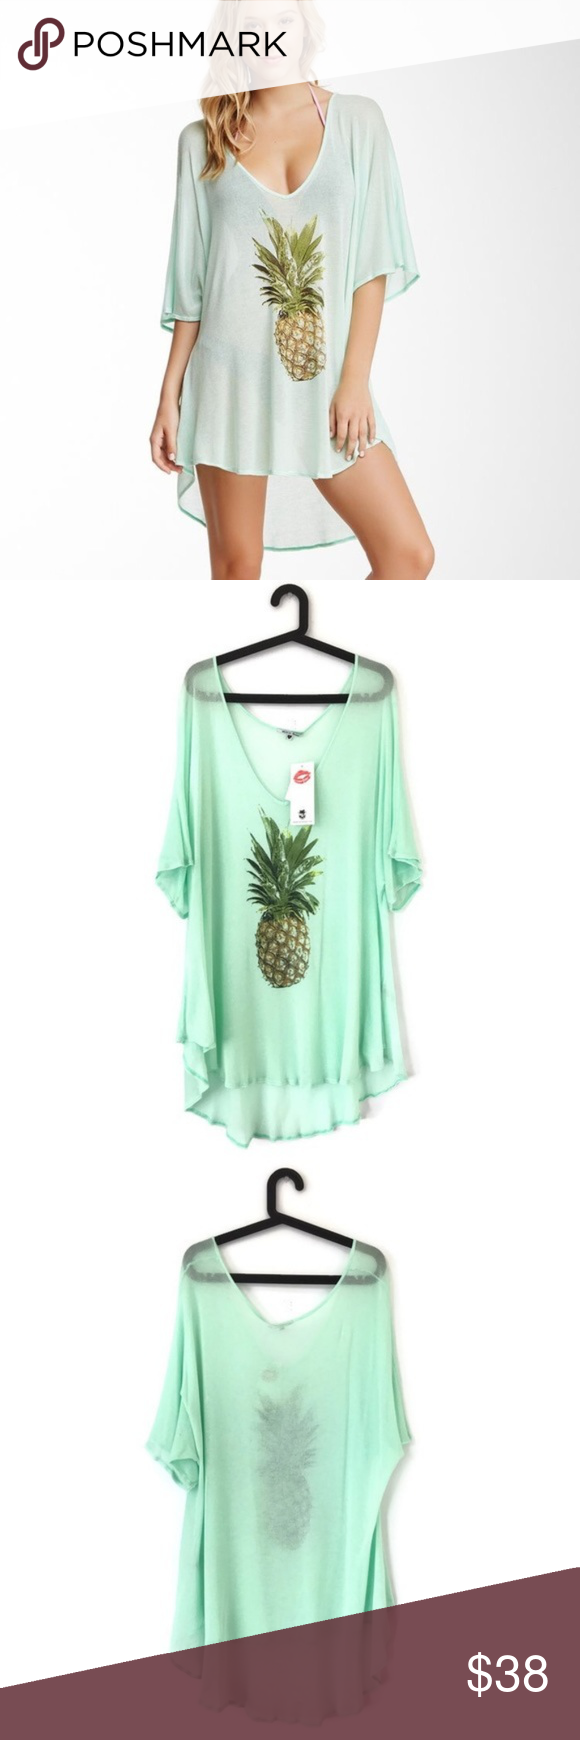 """2e83b7806ca71 NWT Wildfox Swim Pineapple Tunic Cover Up Small Bust  26"""" (Armpit to  Armpit) Length  30""""-33"""" (Front-Back) Condition  Pull on the left back side"""